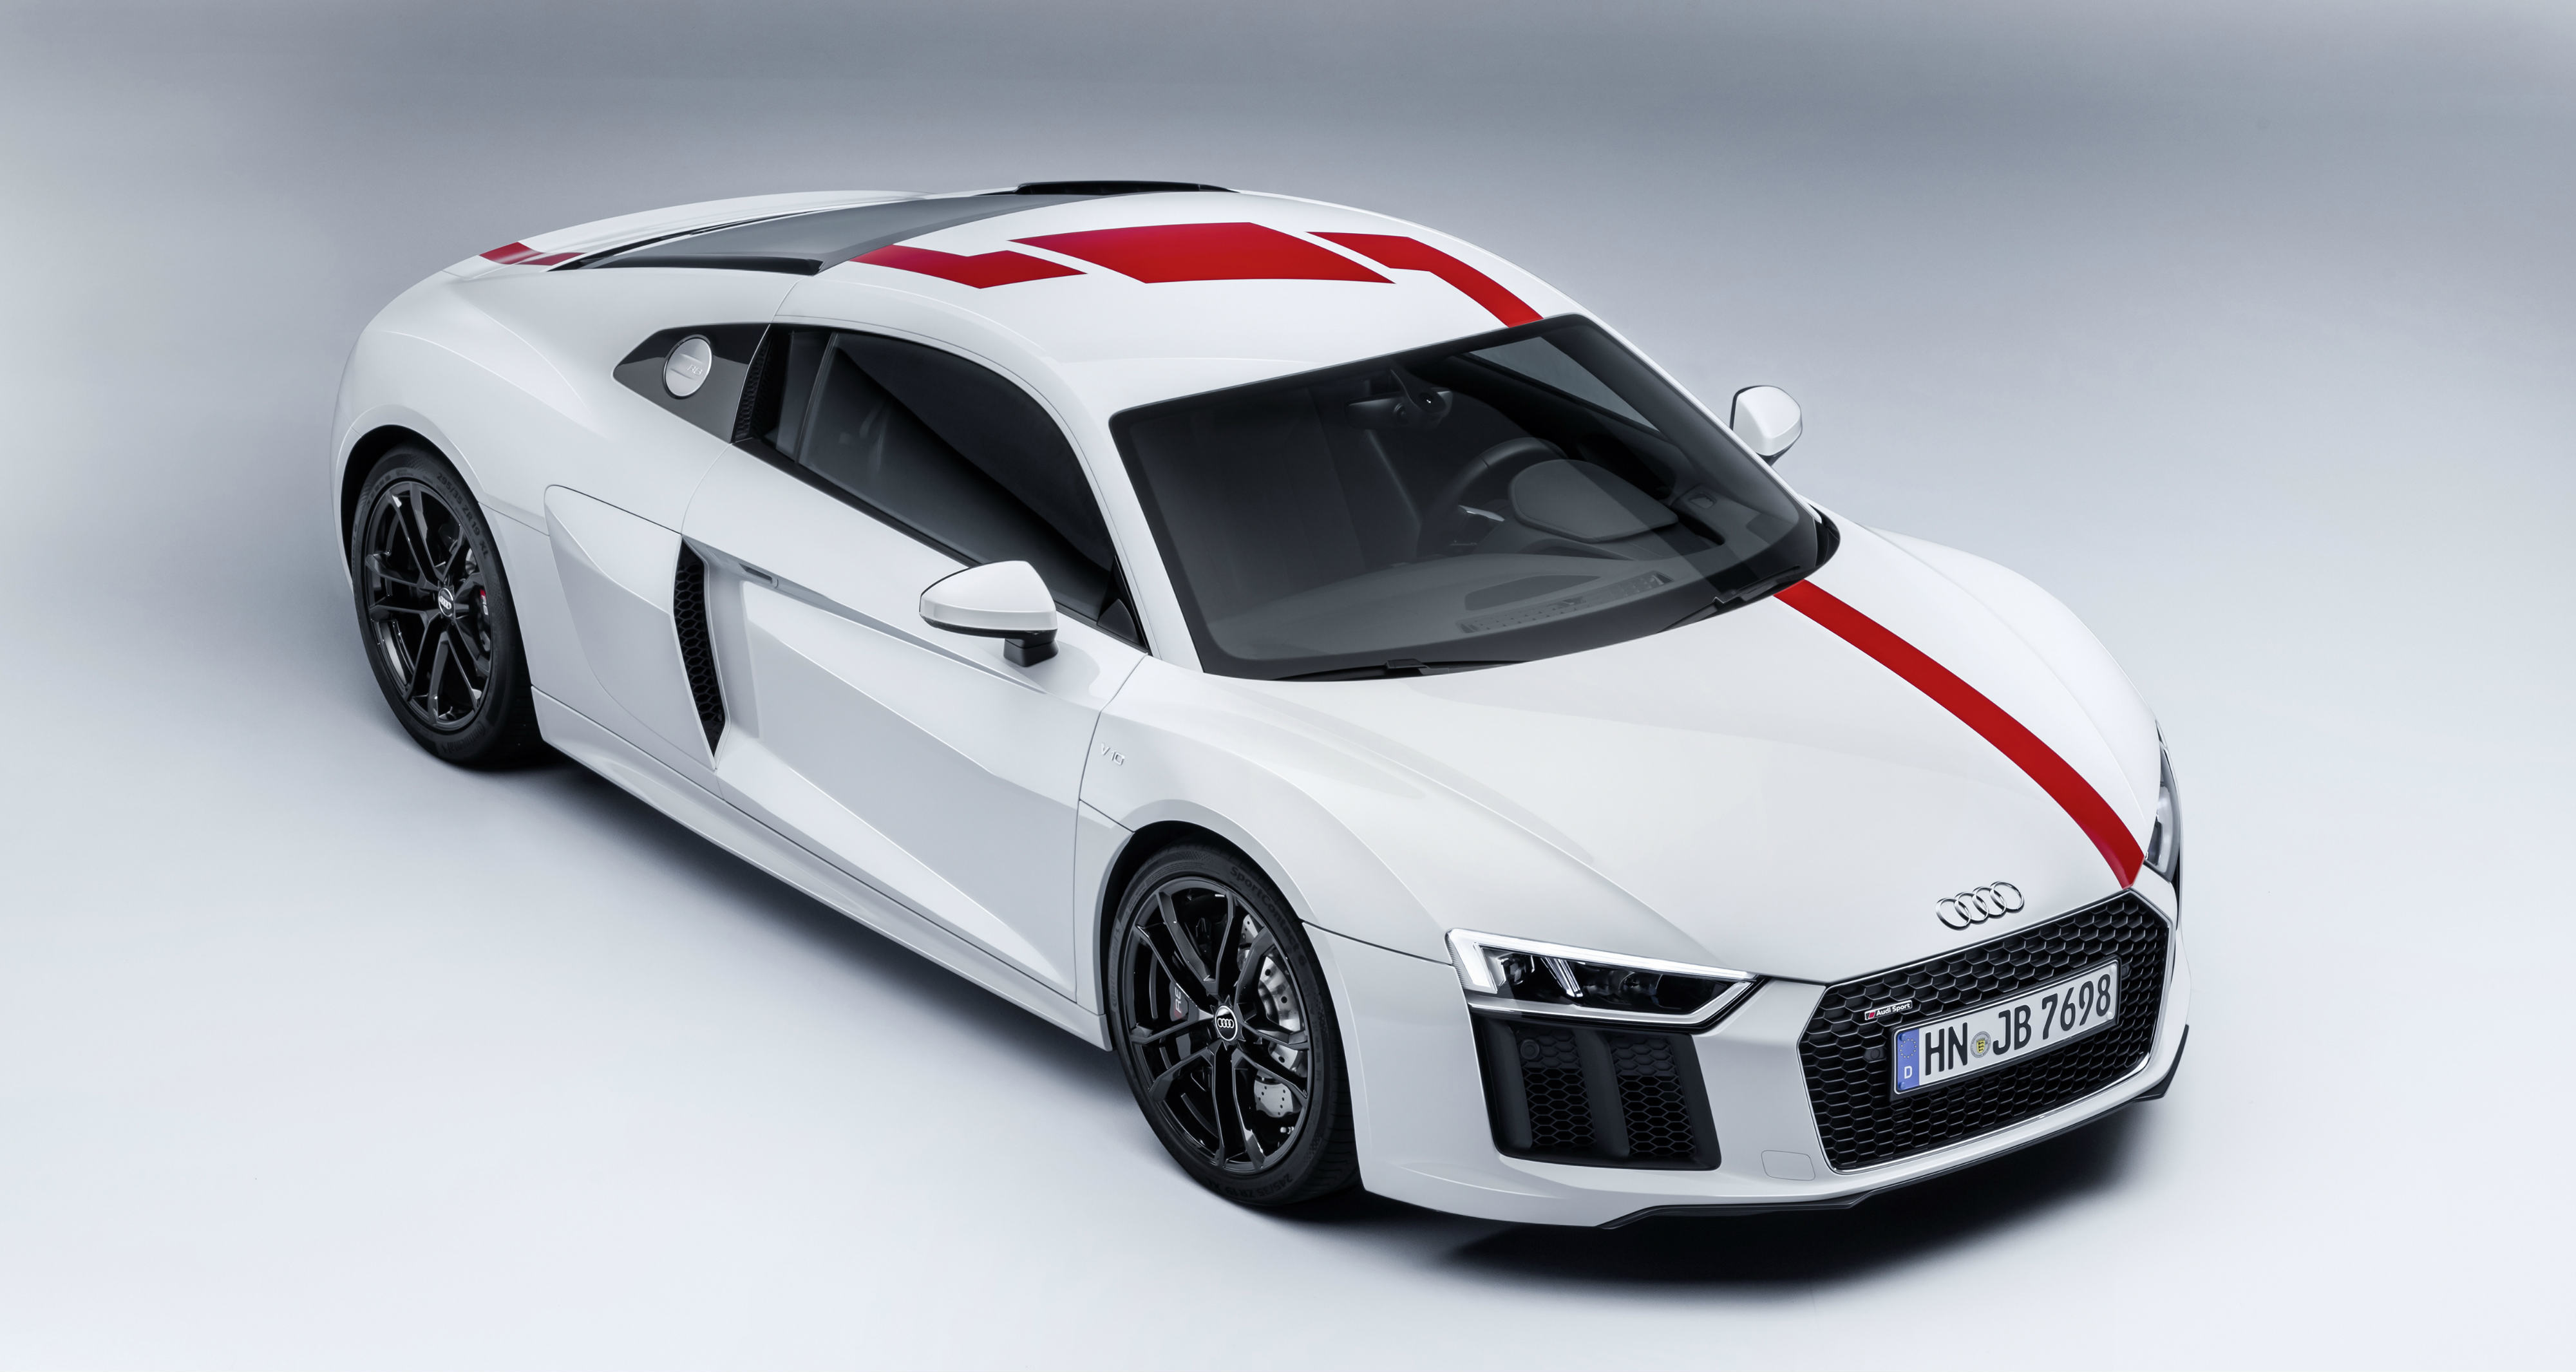 New Audi R V RWS Is A Reardrive Supercar Series Limited To - R8 audi